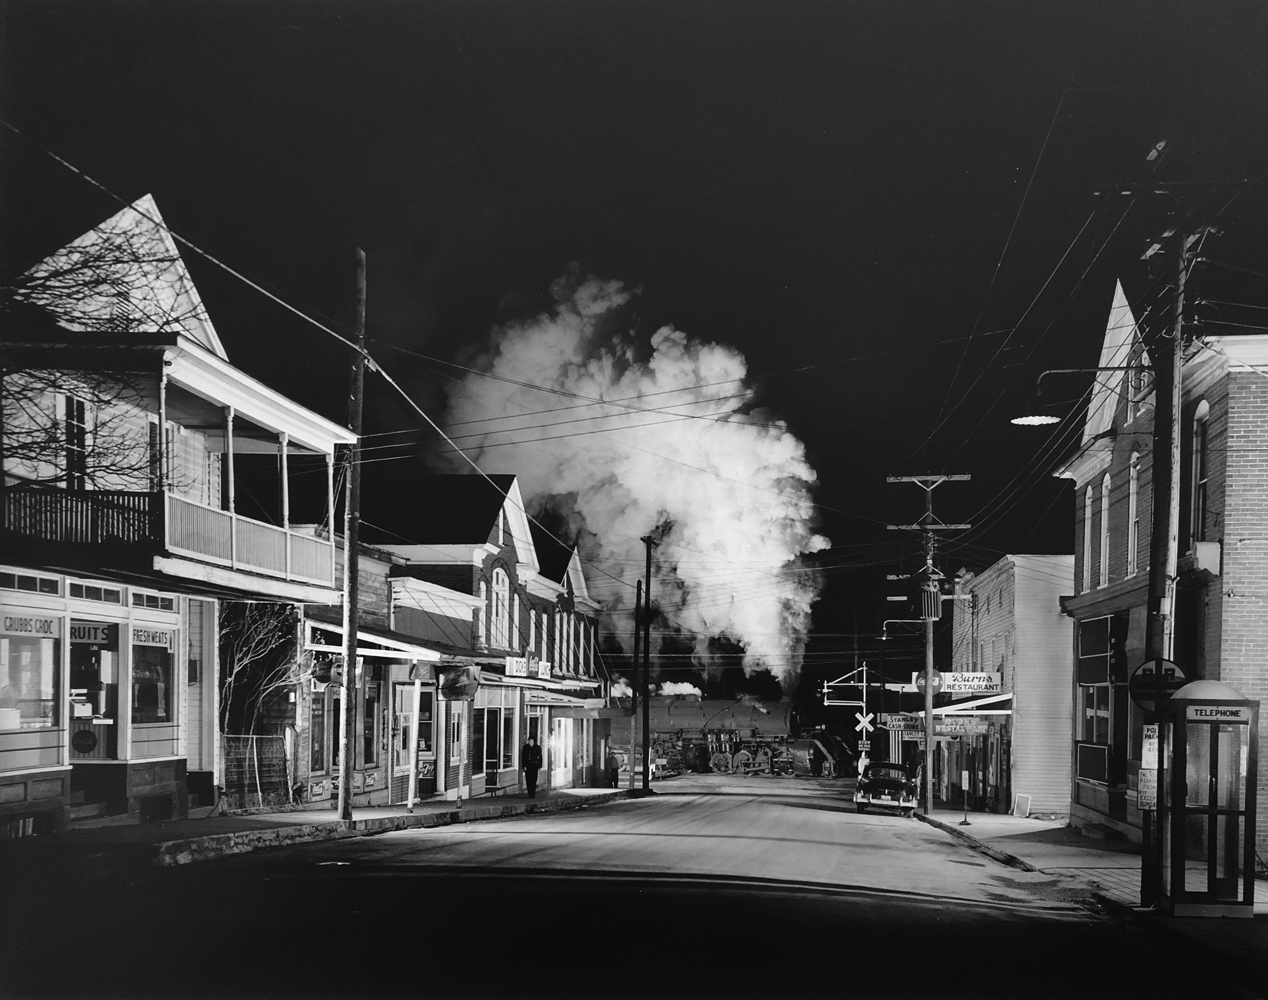 O. Winston Link, Policeman Weldon Painter Patrols the Main Street, Stanley, Virginia, 1956, gelatin silver print, 15.25 x 19.25 inches, signed by artist, price on request